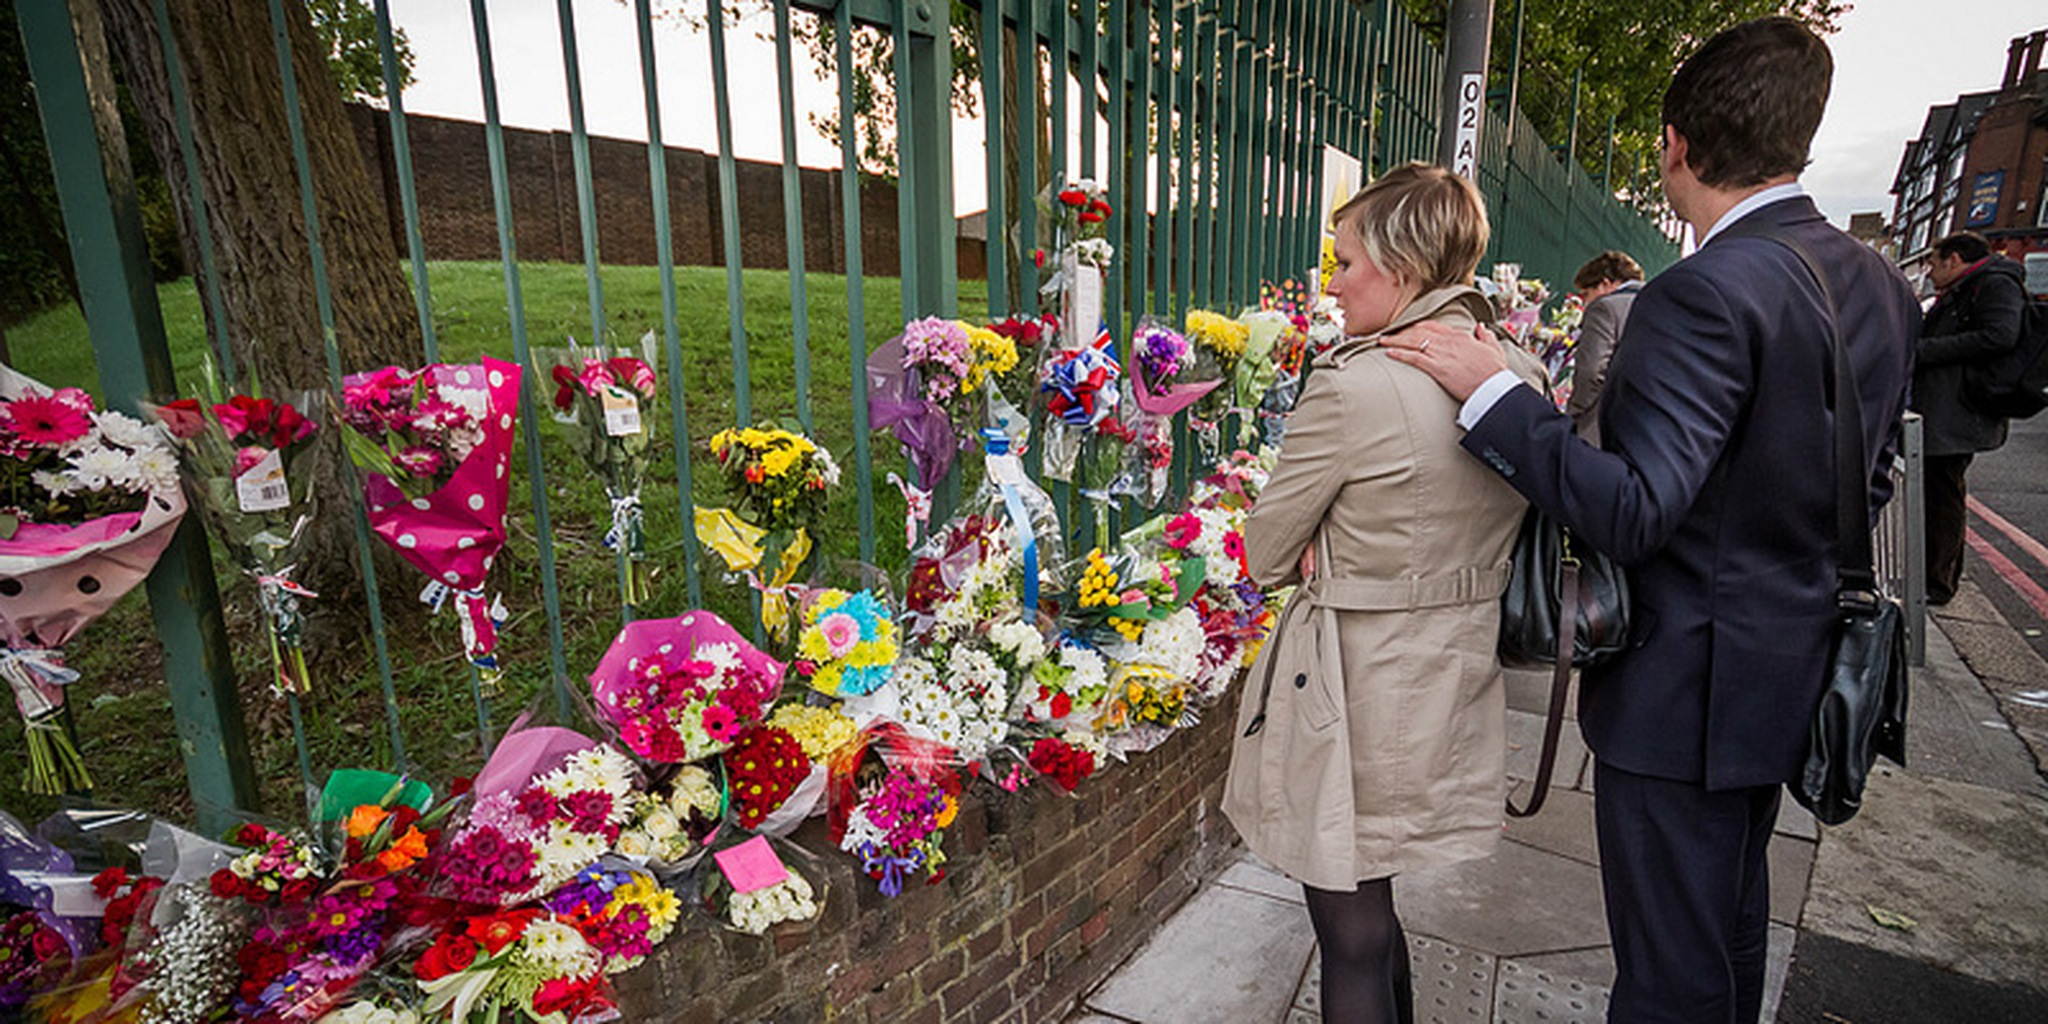 Floral tributes for Lee Rigby at Woolwich Barracks, London 2013 (37)   Flickr - Photo Sharing!